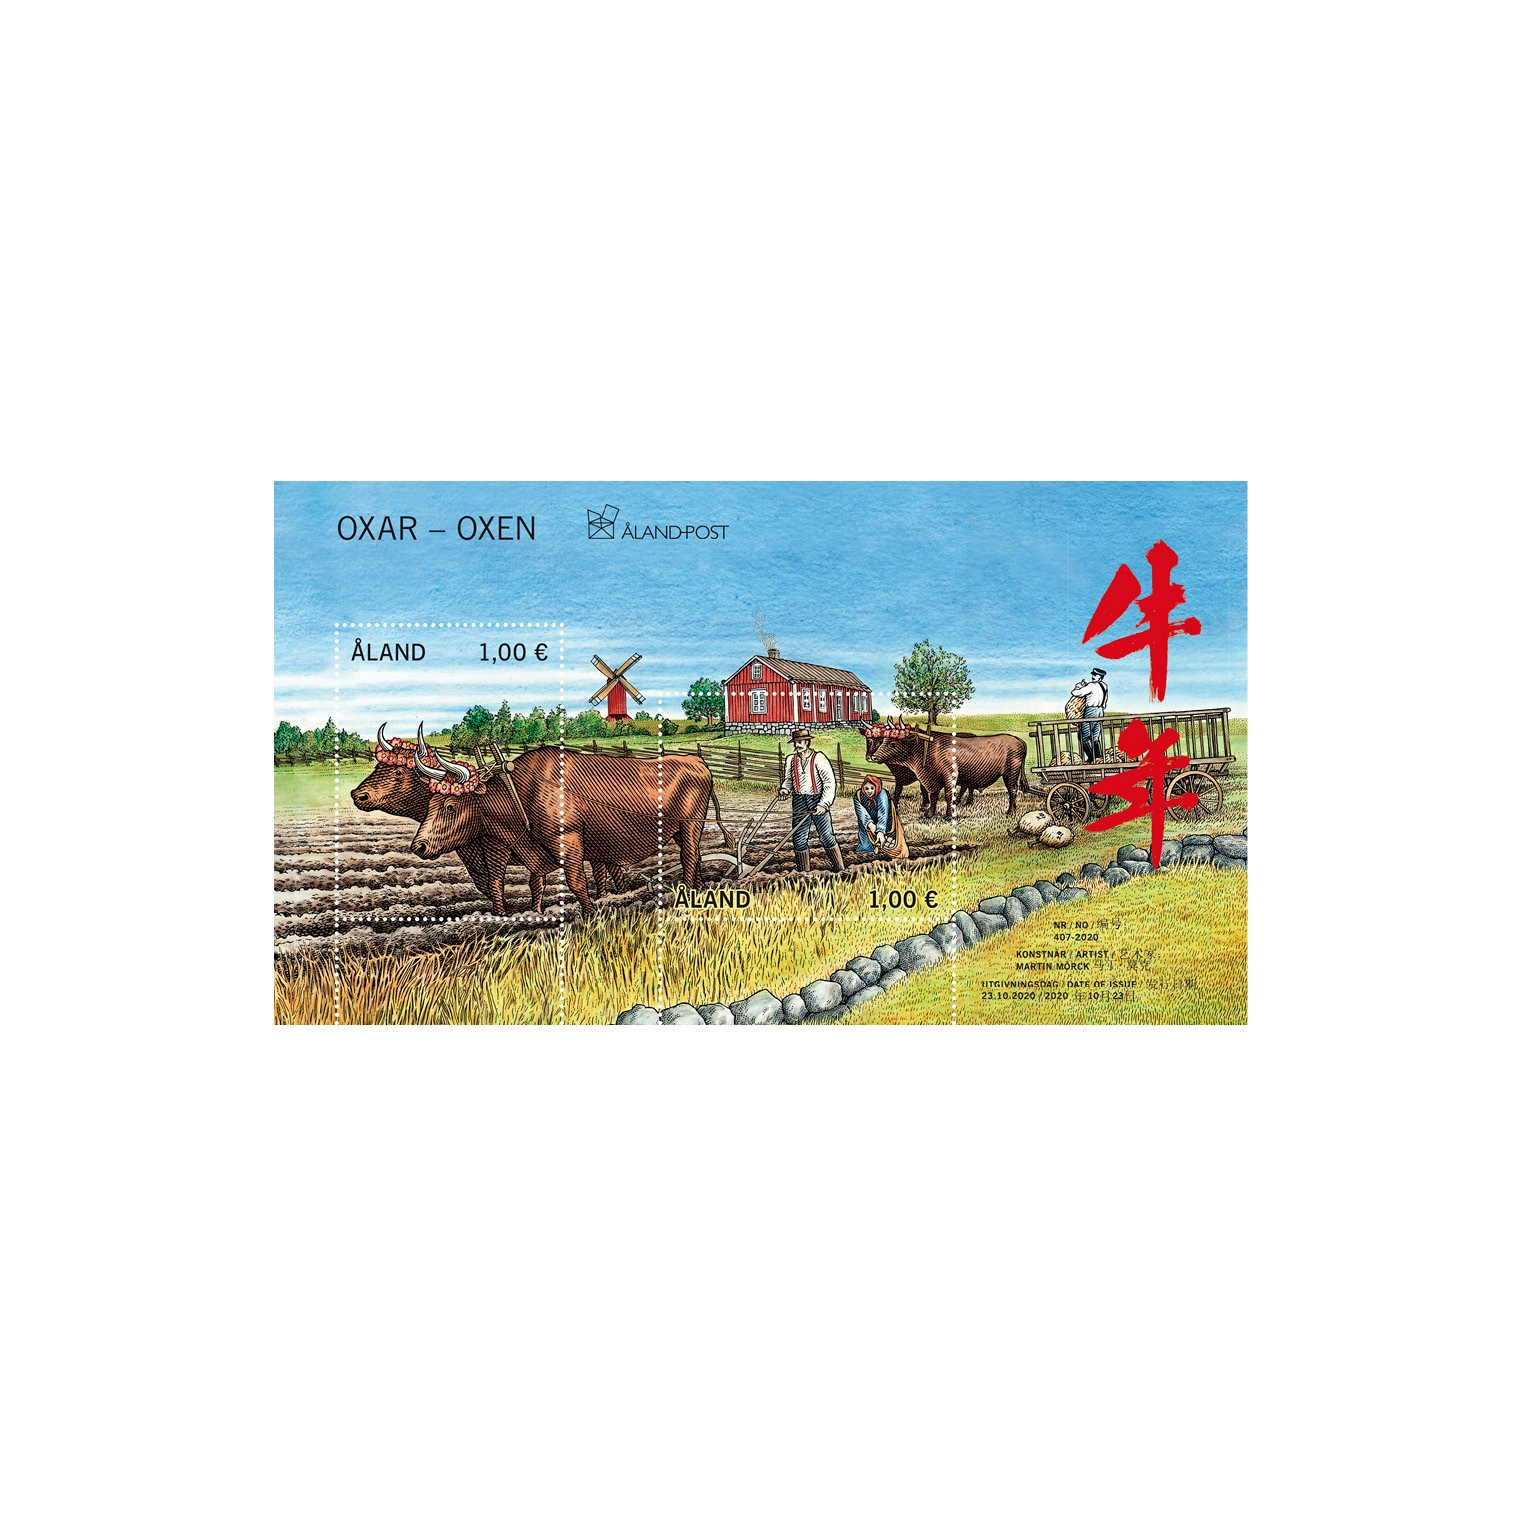 Miniature sheet with oxen from Åland